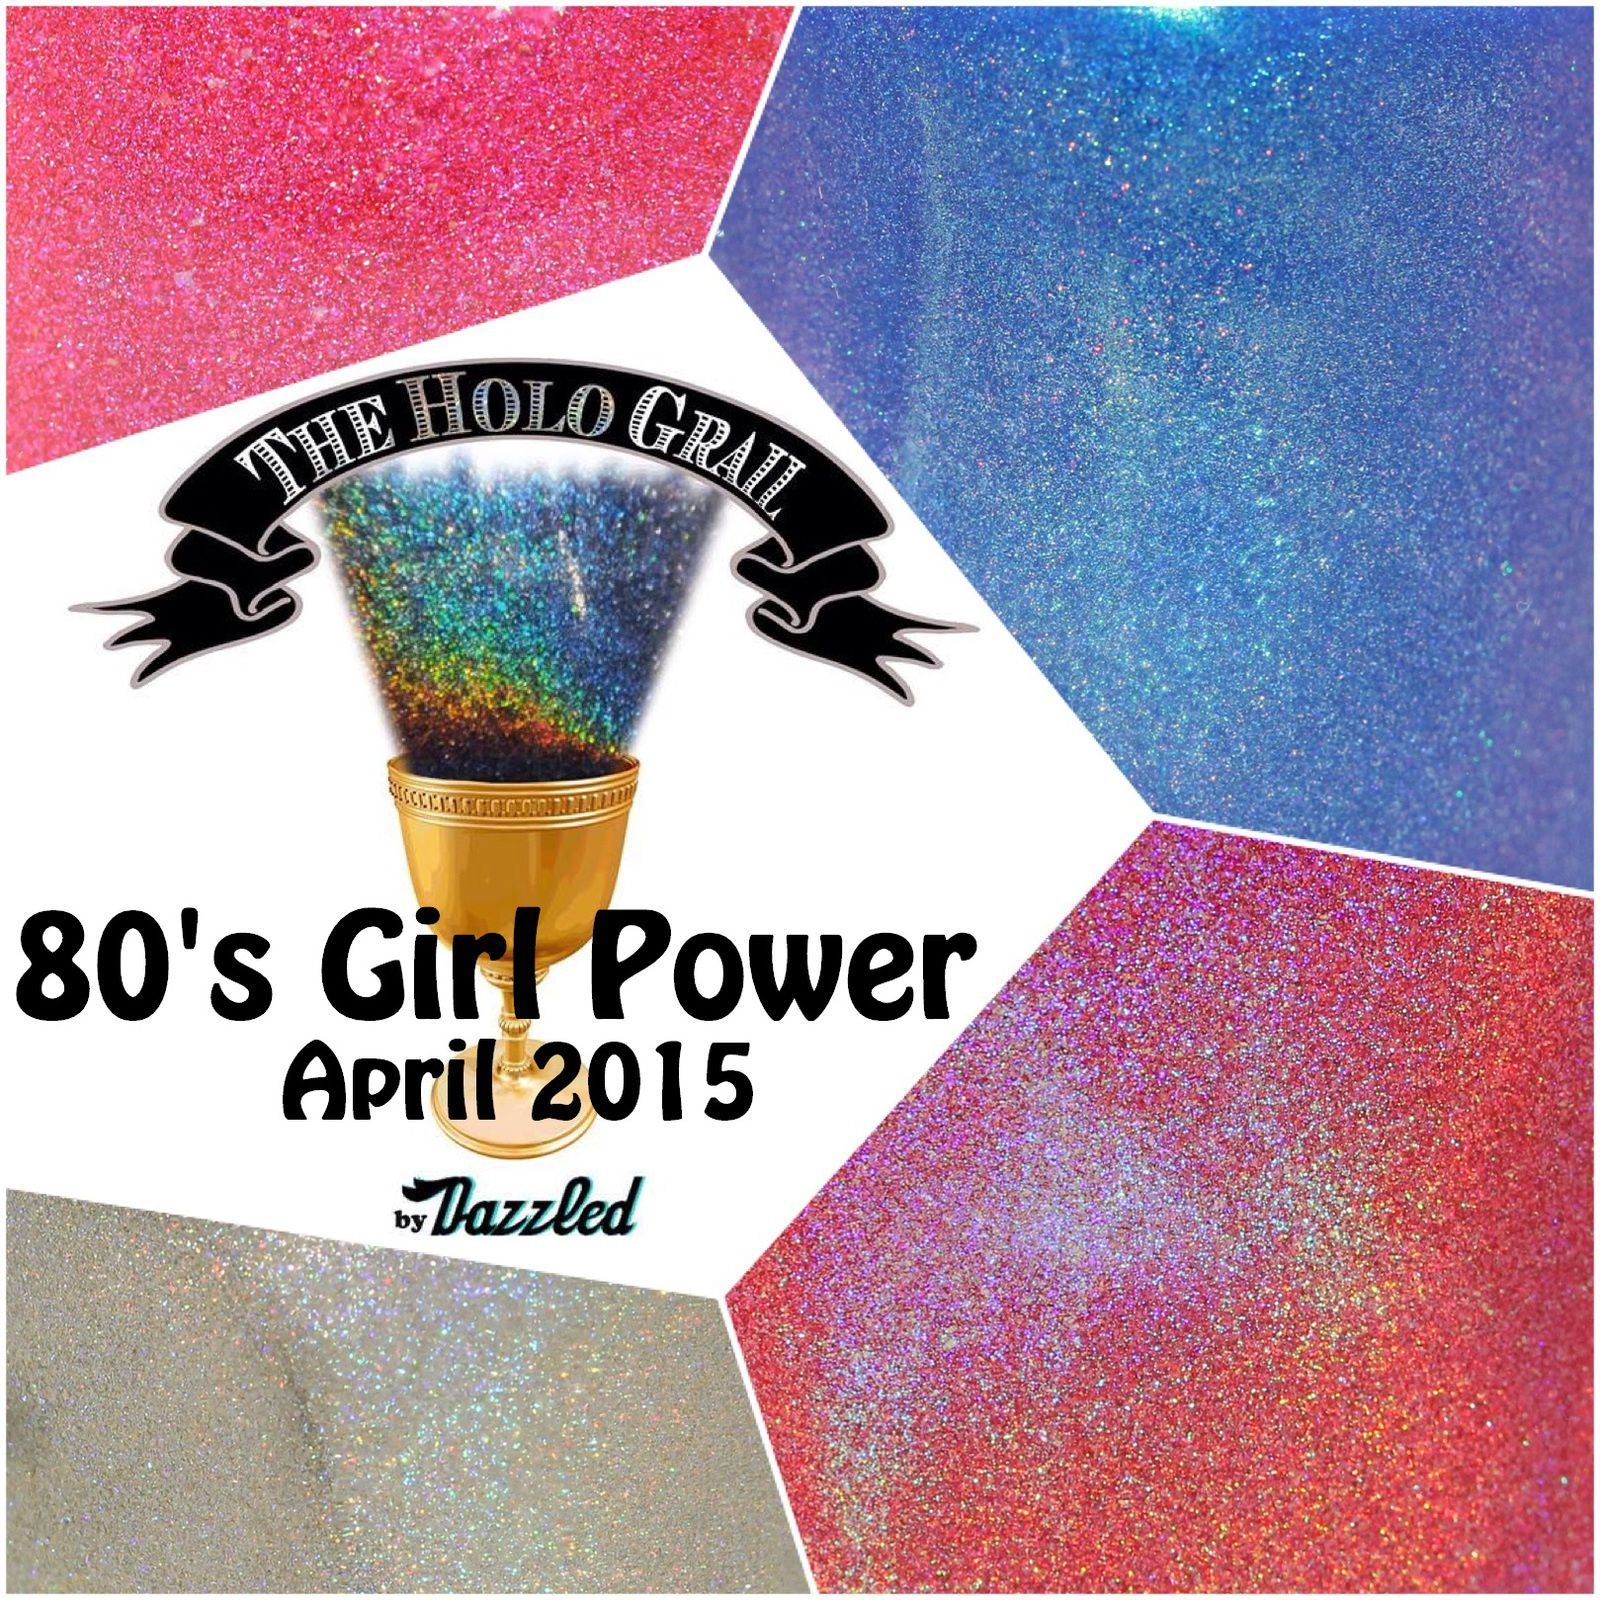 The Holo Grail Box by Dazzled - April 2015 - 80's Girl Power